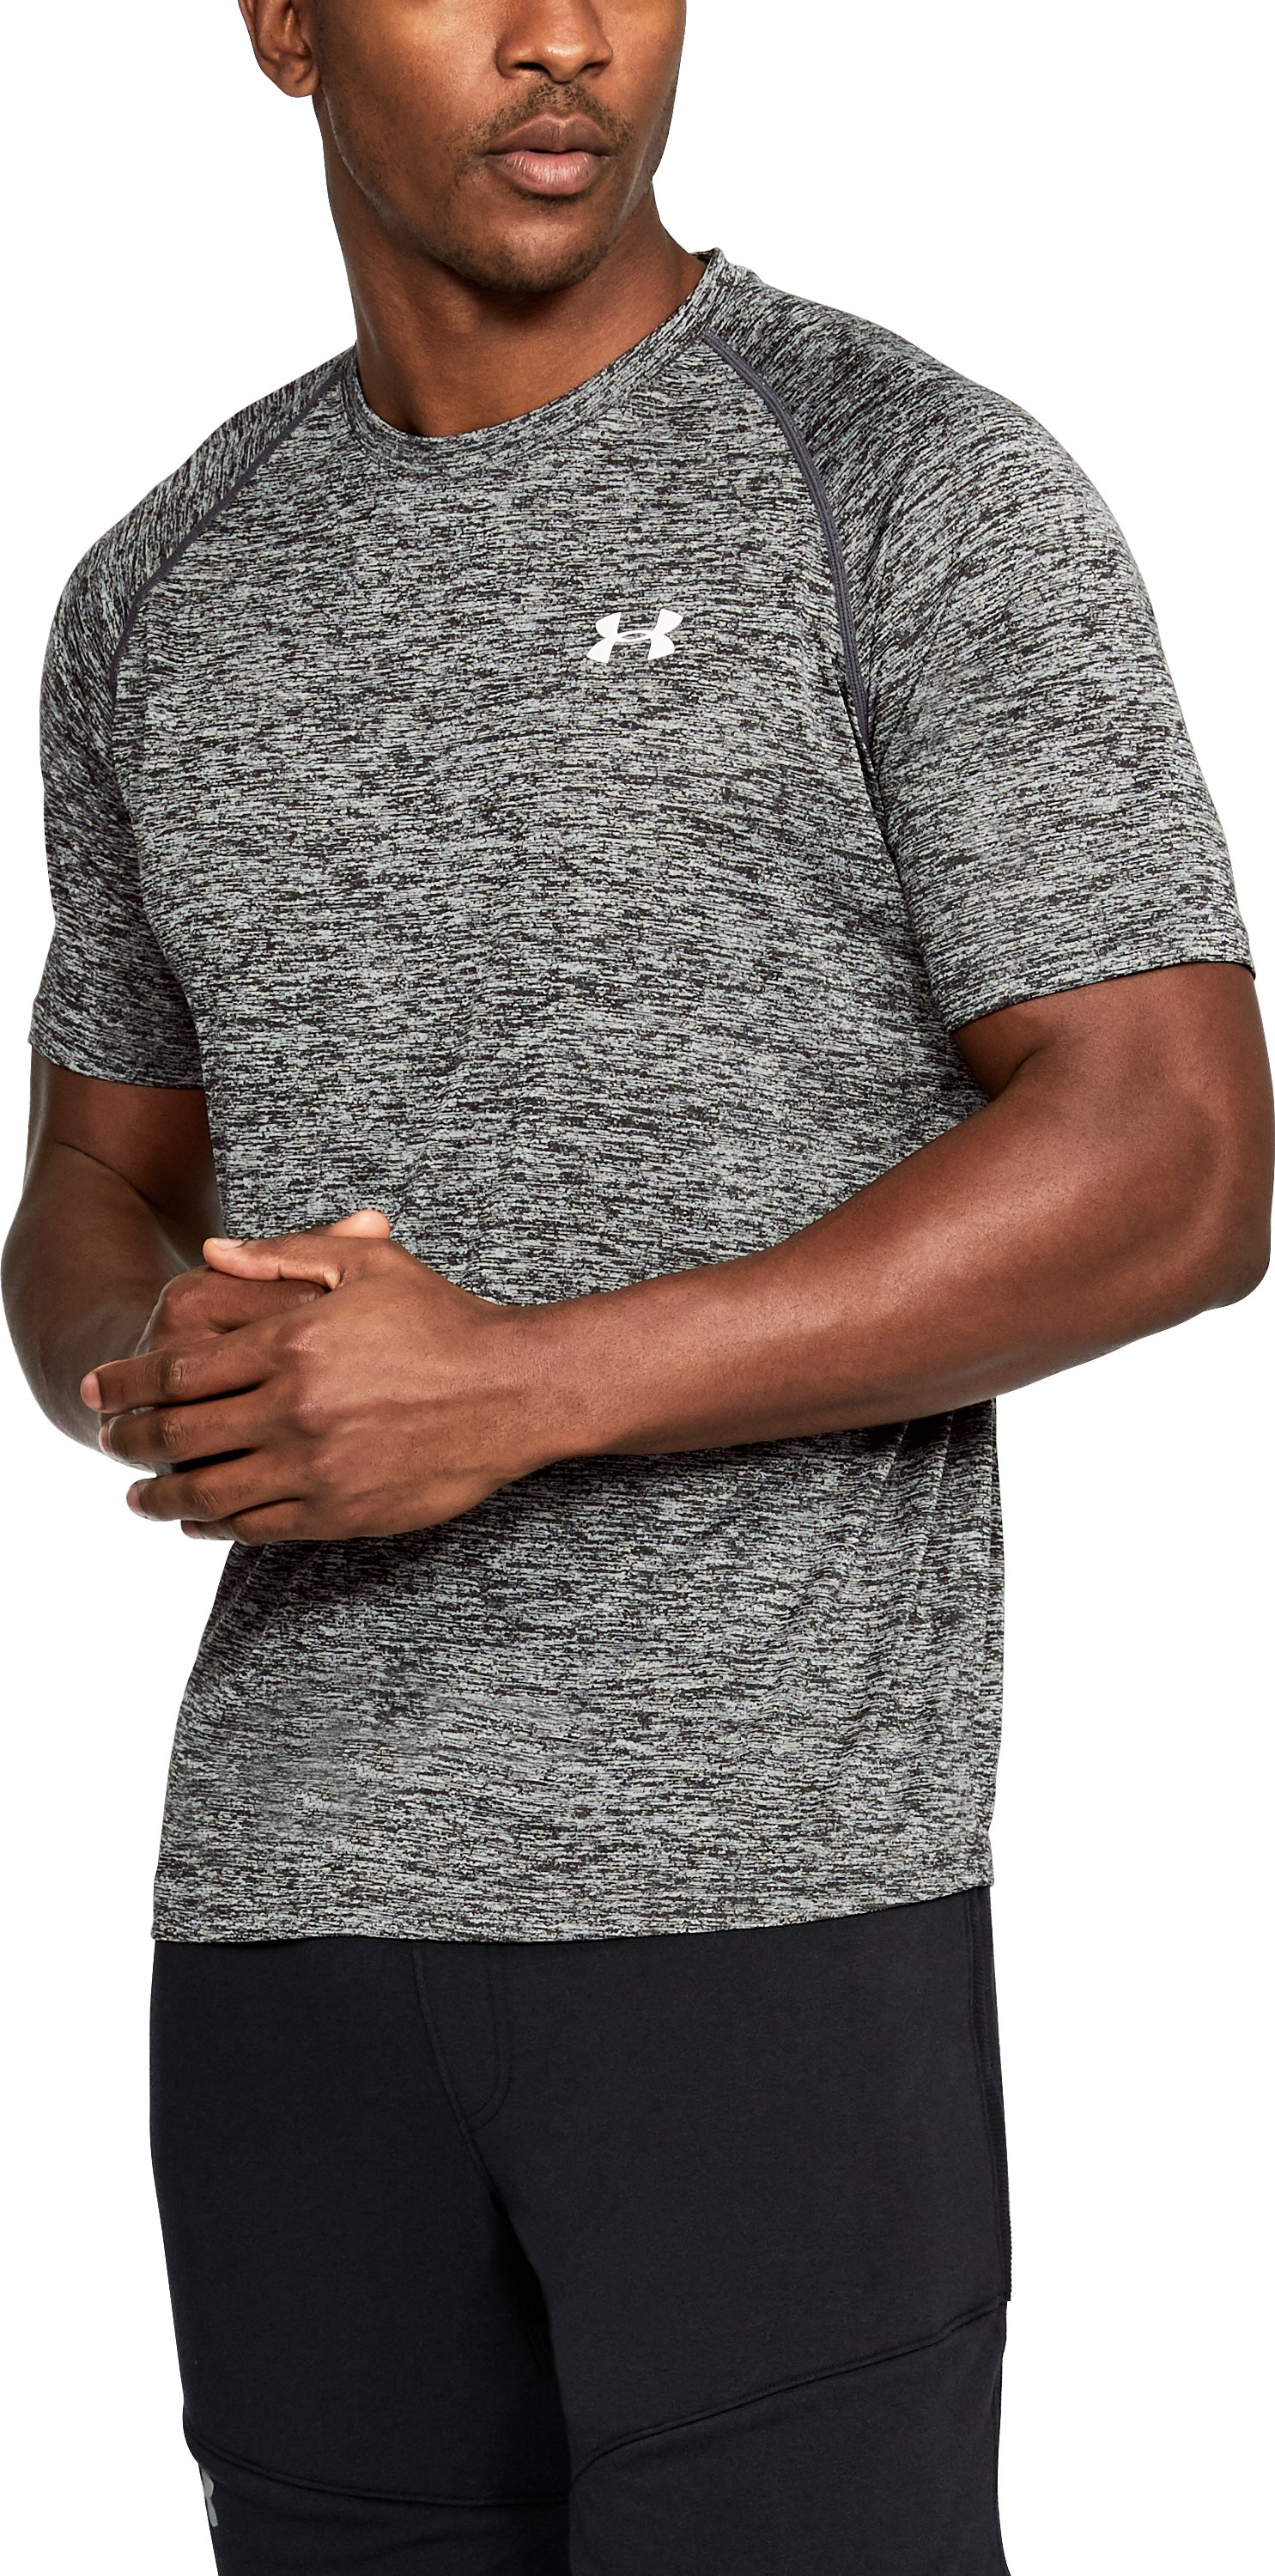 Under Armour Performance T-Shirt Homme, Jade, LG